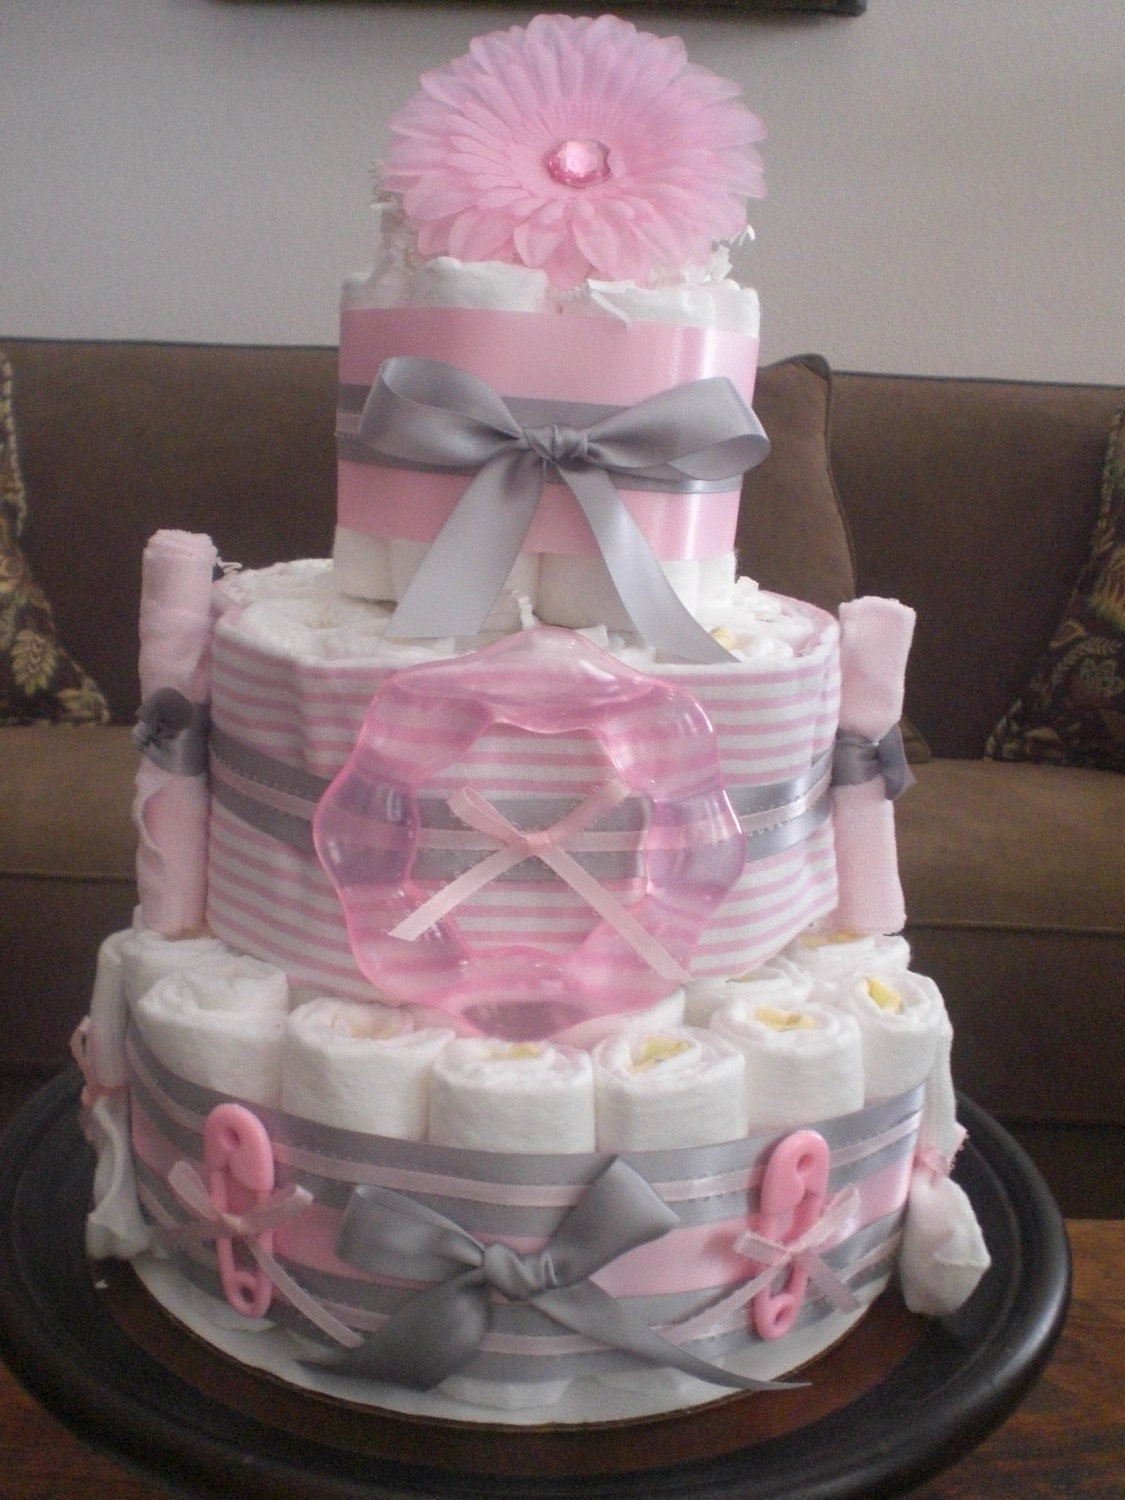 Diaper Cake Centerpiece For Baby Shower : Pink and Grey Diaper Cake Baby Shower Centerpiece other